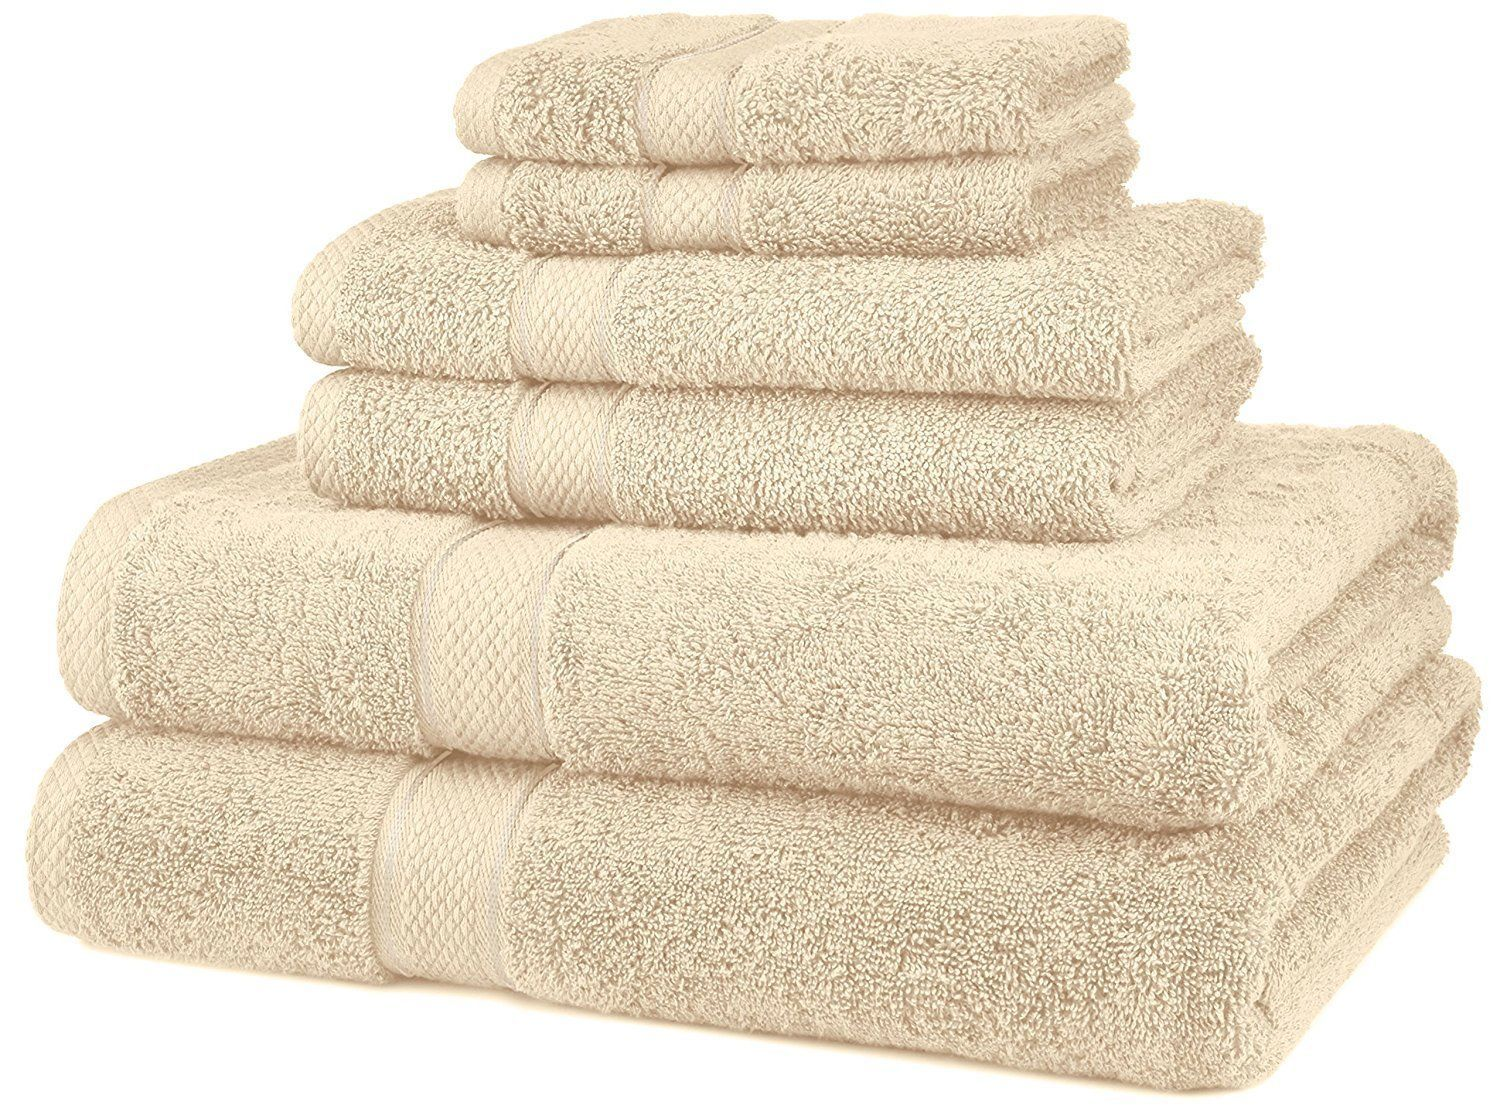 EGYPTIAN COTTON FROM PINZON MONOGRAMMED 6 PCS.TOWELS SET COLOR CHOICES